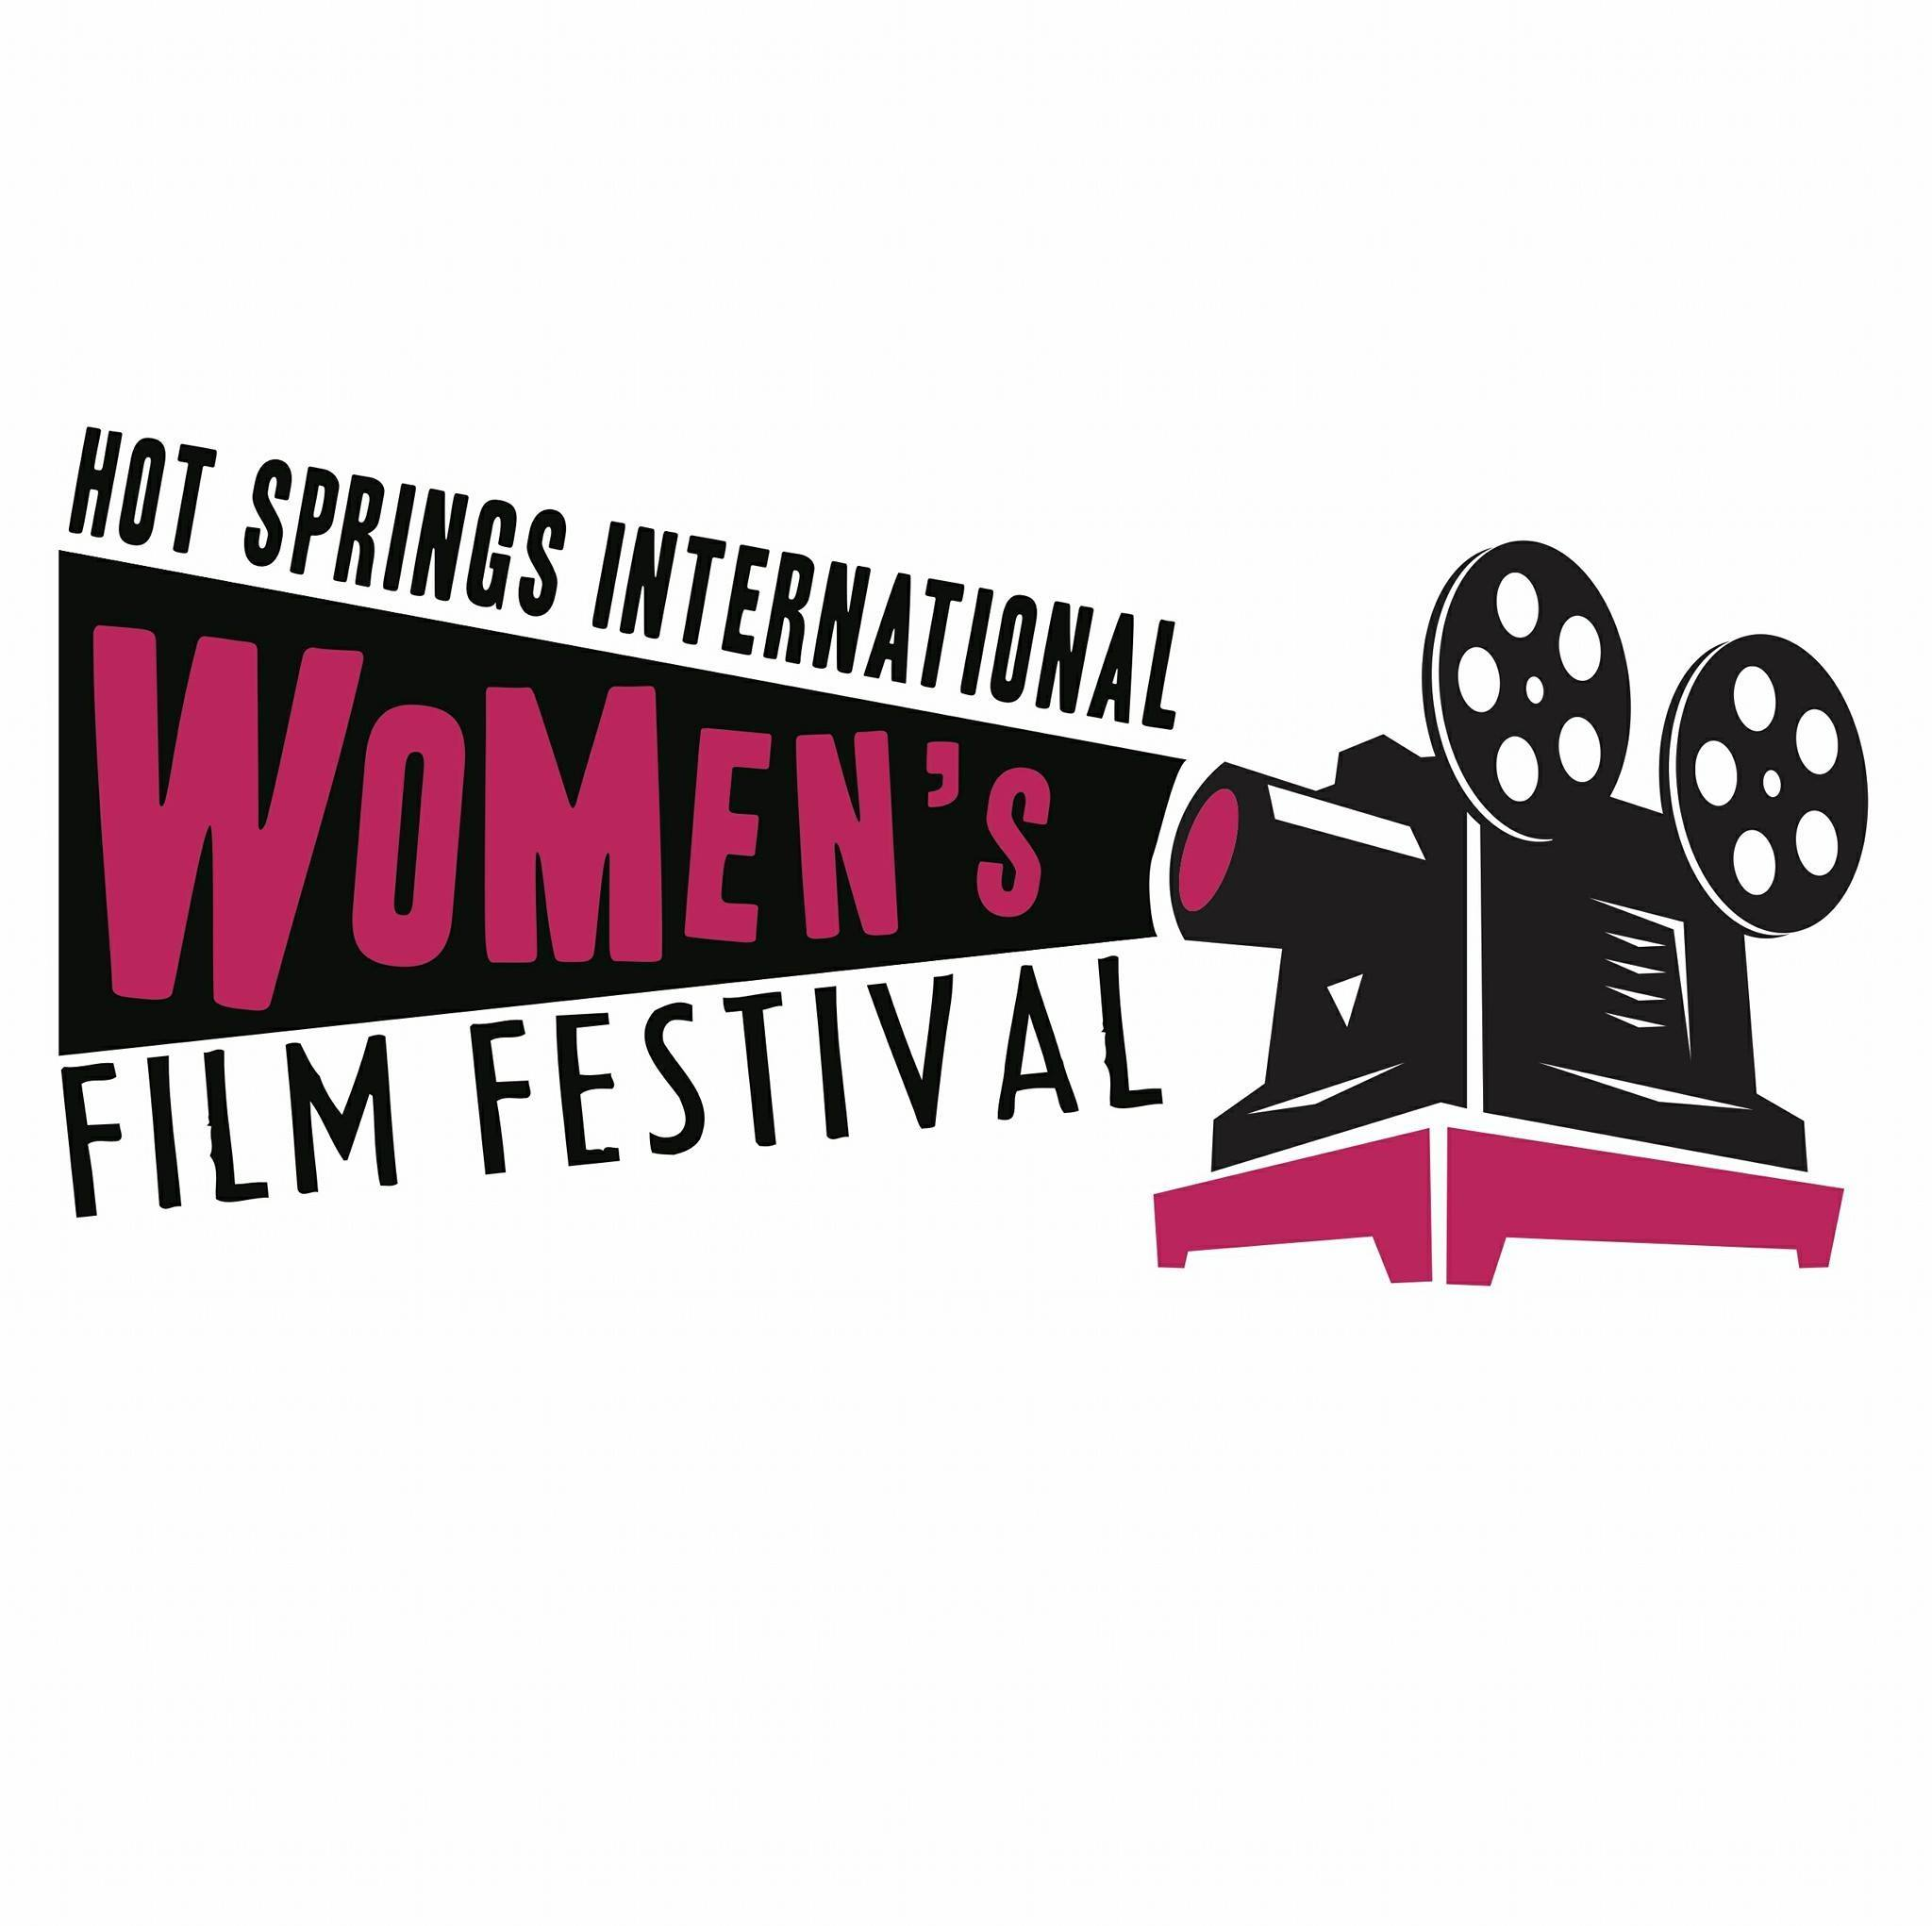 Hot Springs International Women's Film Festival logo